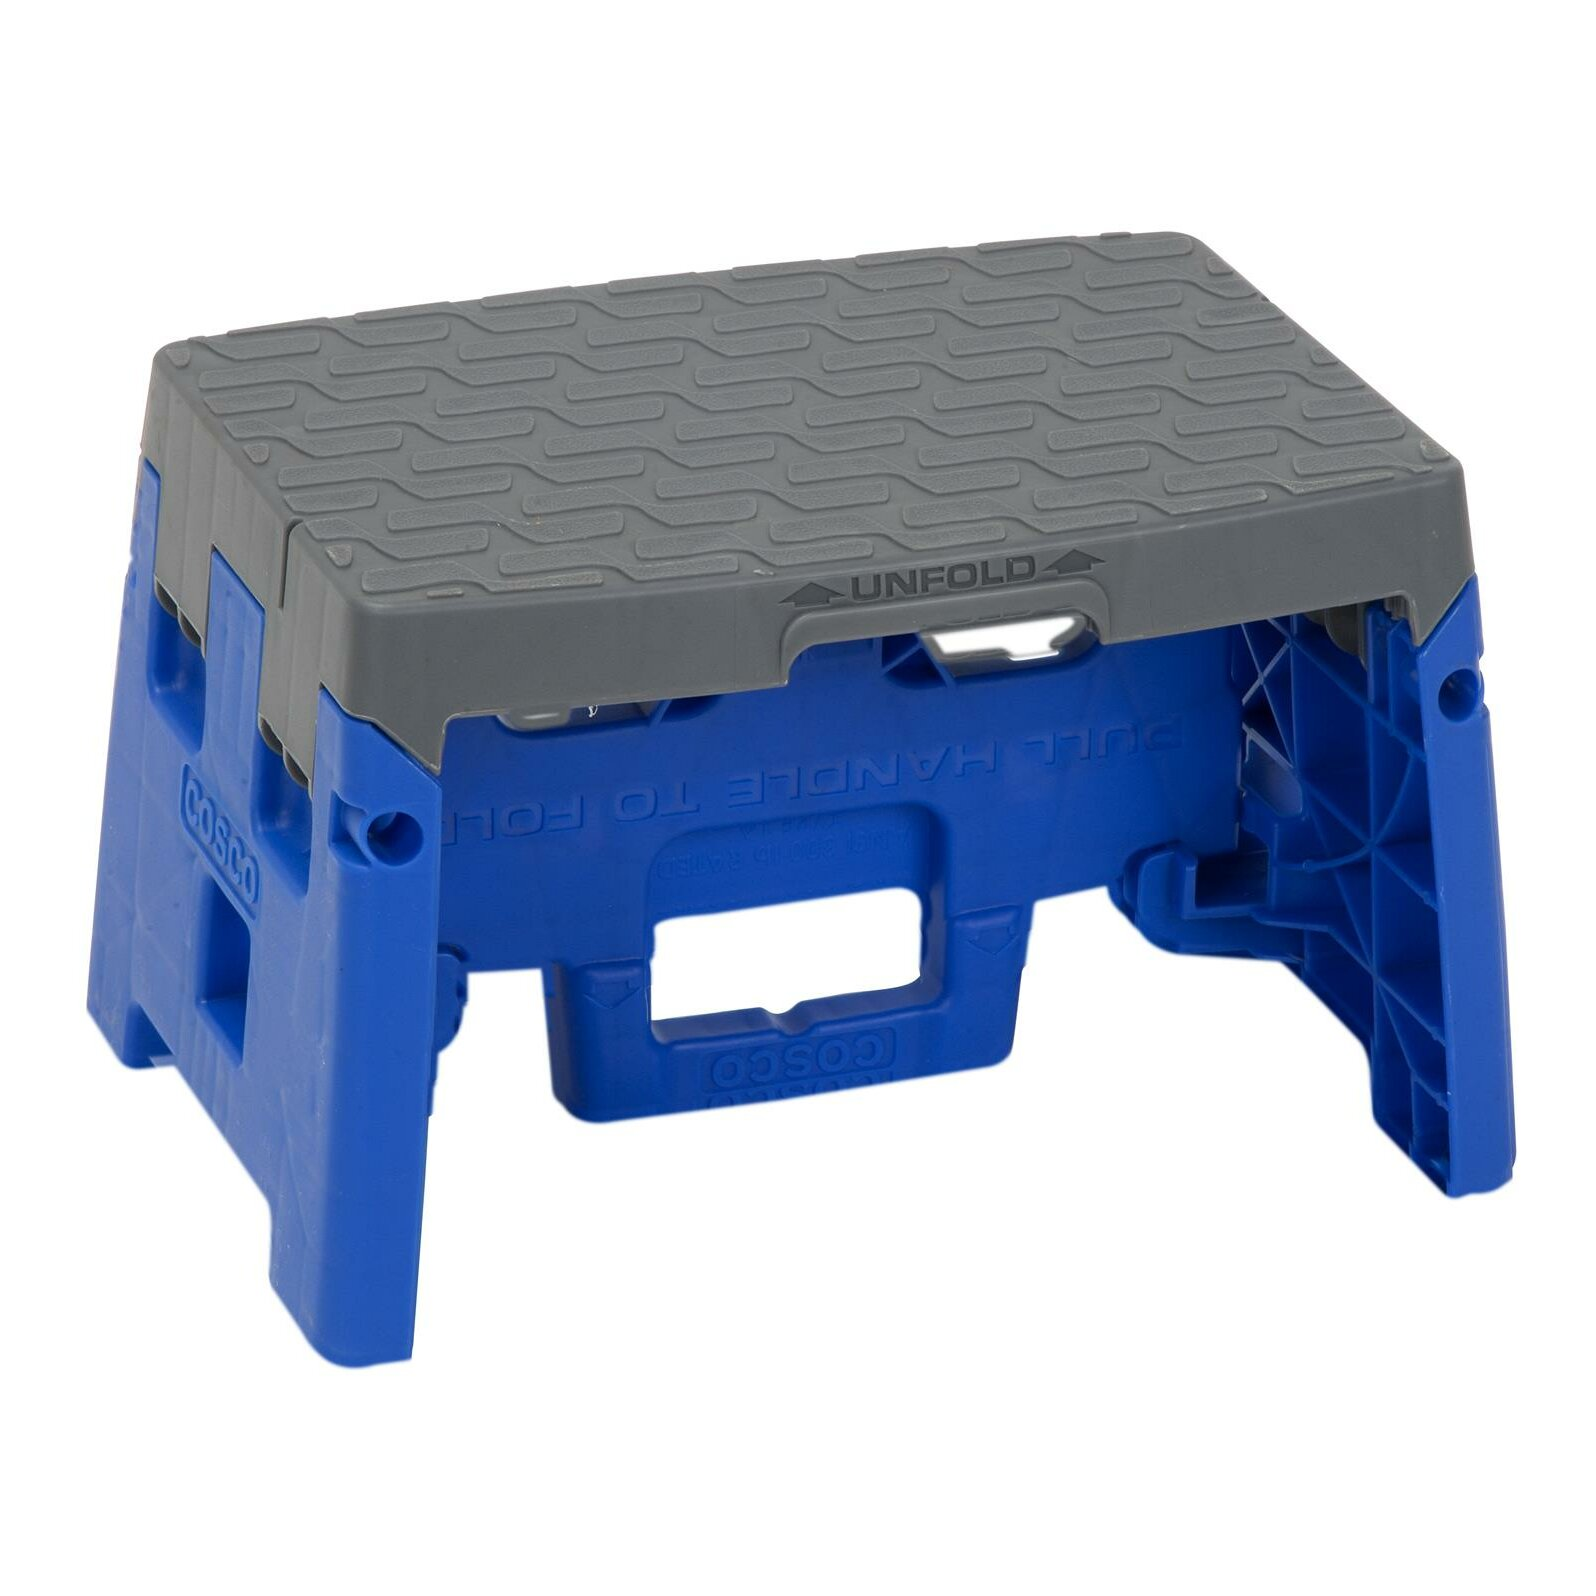 Cosco Home And Office 1 Step Plastic Moulded Folding Step